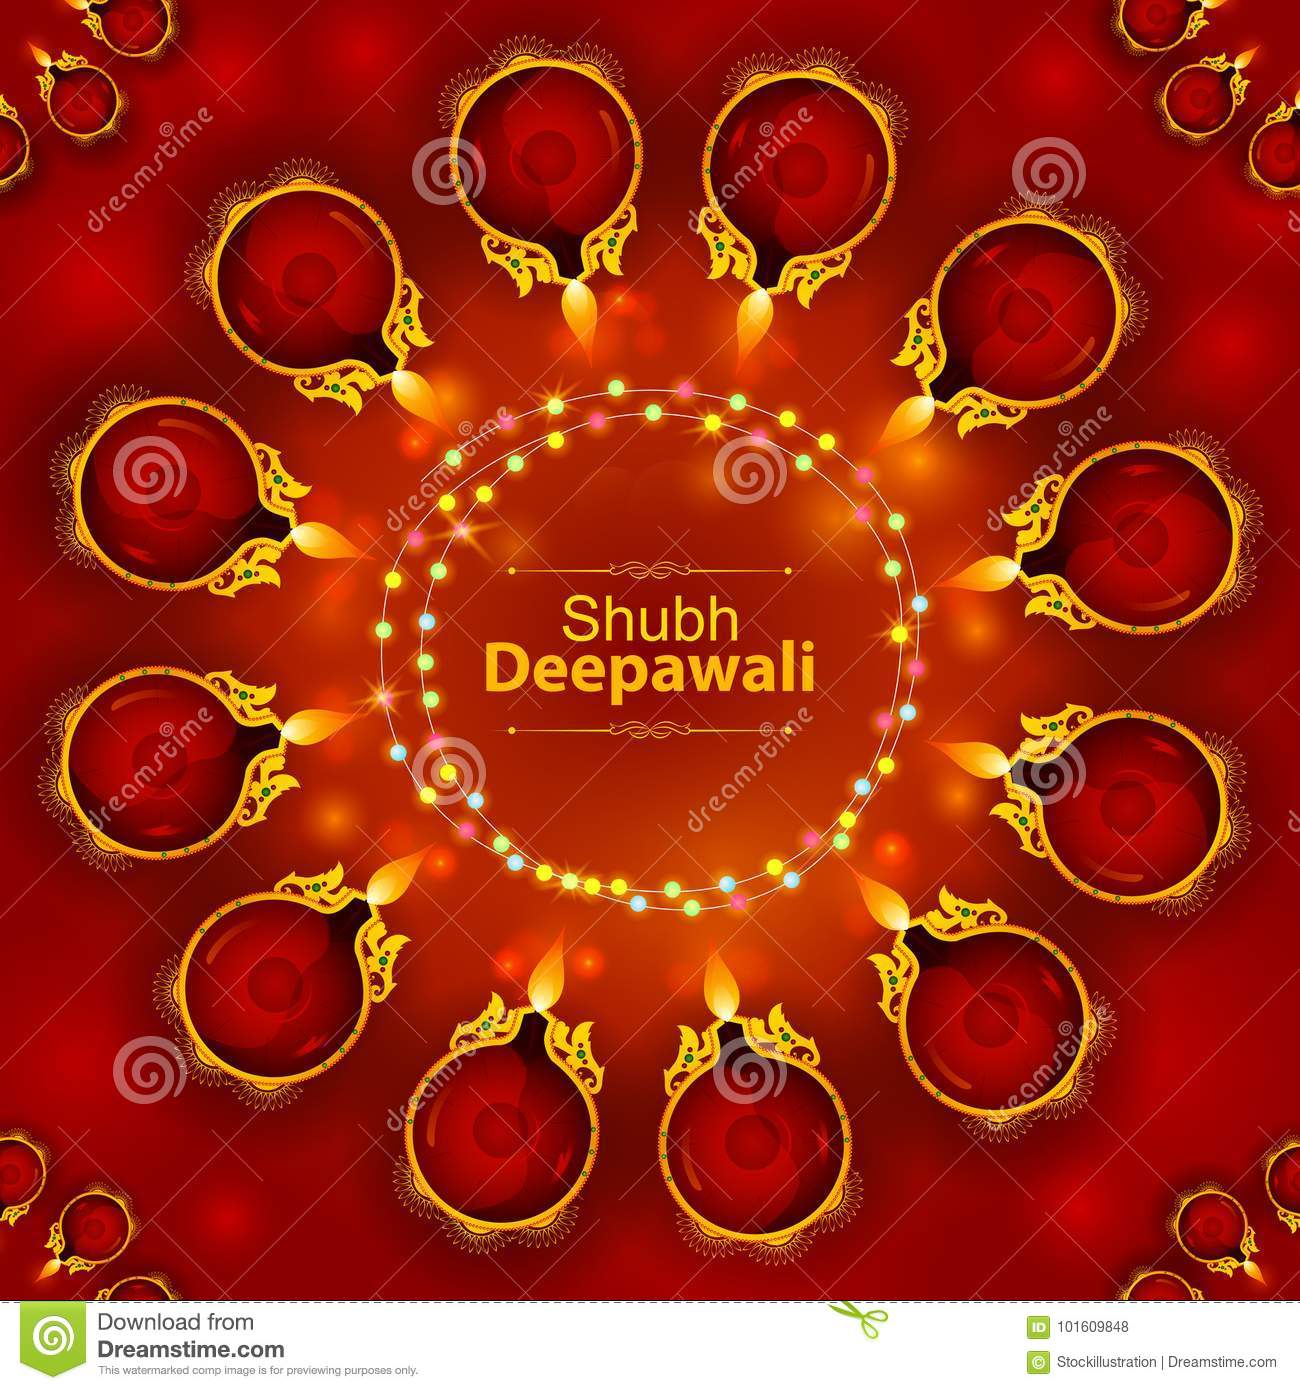 Happy diwali light festival of india greeting background stock download happy diwali light festival of india greeting background stock vector illustration of holiday m4hsunfo